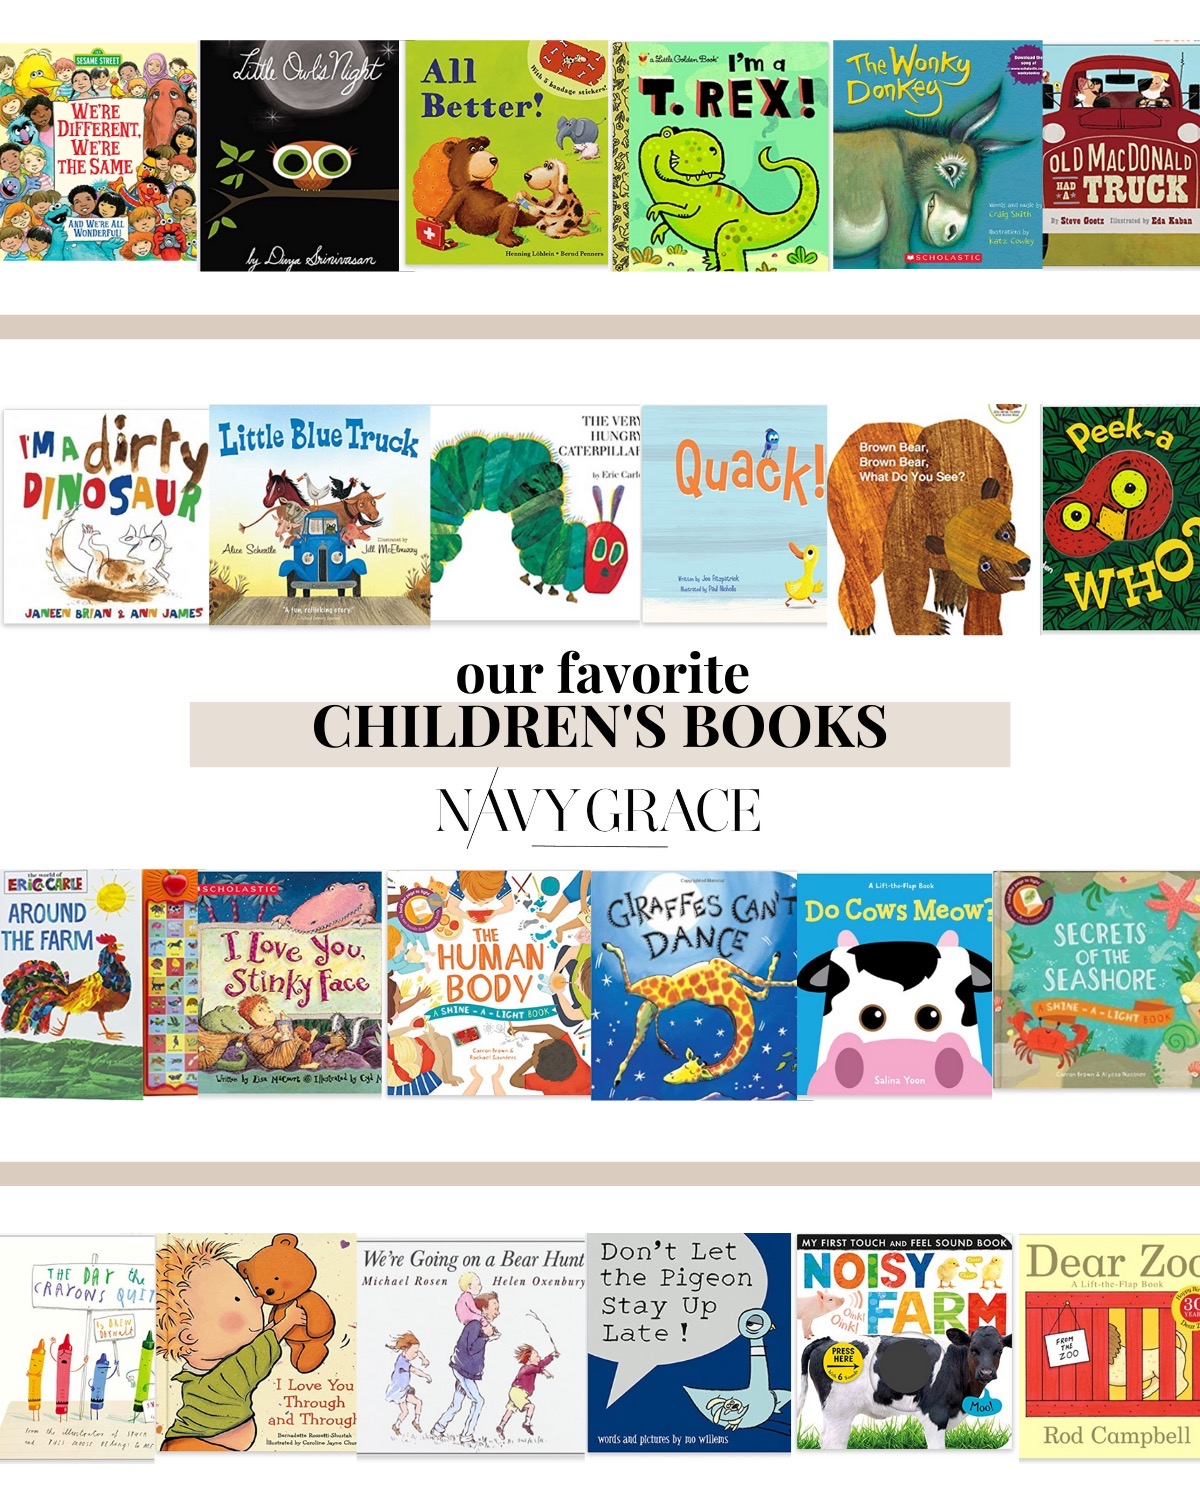 Best Children's Books by popular San Diego motherhood blog, Navy Grace: Pinterest collage image of We're Different We're the Same, Little Owls Night, All Better!, I'm a T. Rex!, The Wonkey Donkey, Old MacDonald's Truck, I'm a Dirty Dinosaur, Little Blue Truck, The Very Hungry Caterpillar, Quack!, Brown Bear Brown Bear What Do You See?, Peek-a-Who?, Around the Farm, I Love You Stinky Face, The Human Body, Giraffes Can't Dance, Do Cows Meow?, Secrets of the Seashore, I Love You Through and Through, We're Going on a Bear Hunt, Don't Let the Pigeon Stay Up Late!, Noisy Farm, Dear Zoo.